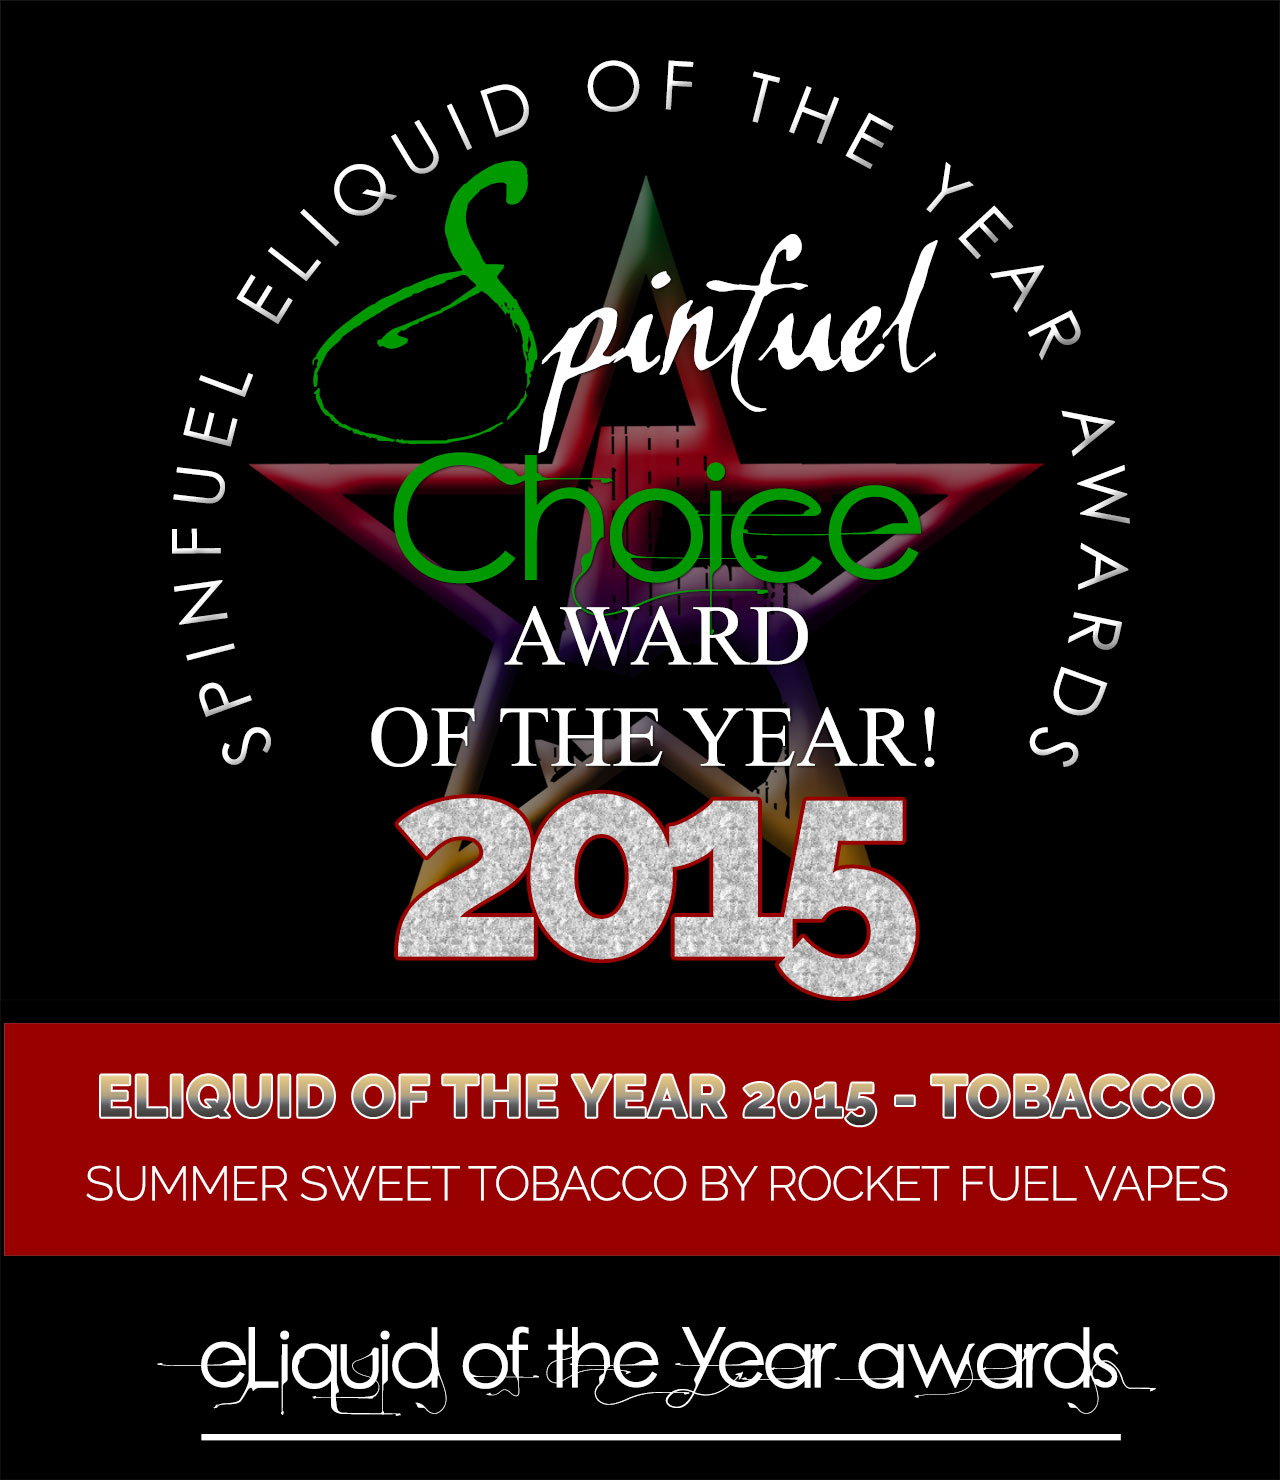 BEST-ELIQUID-TOBACCO-SUMMER Spinfuel Choice Award 2015